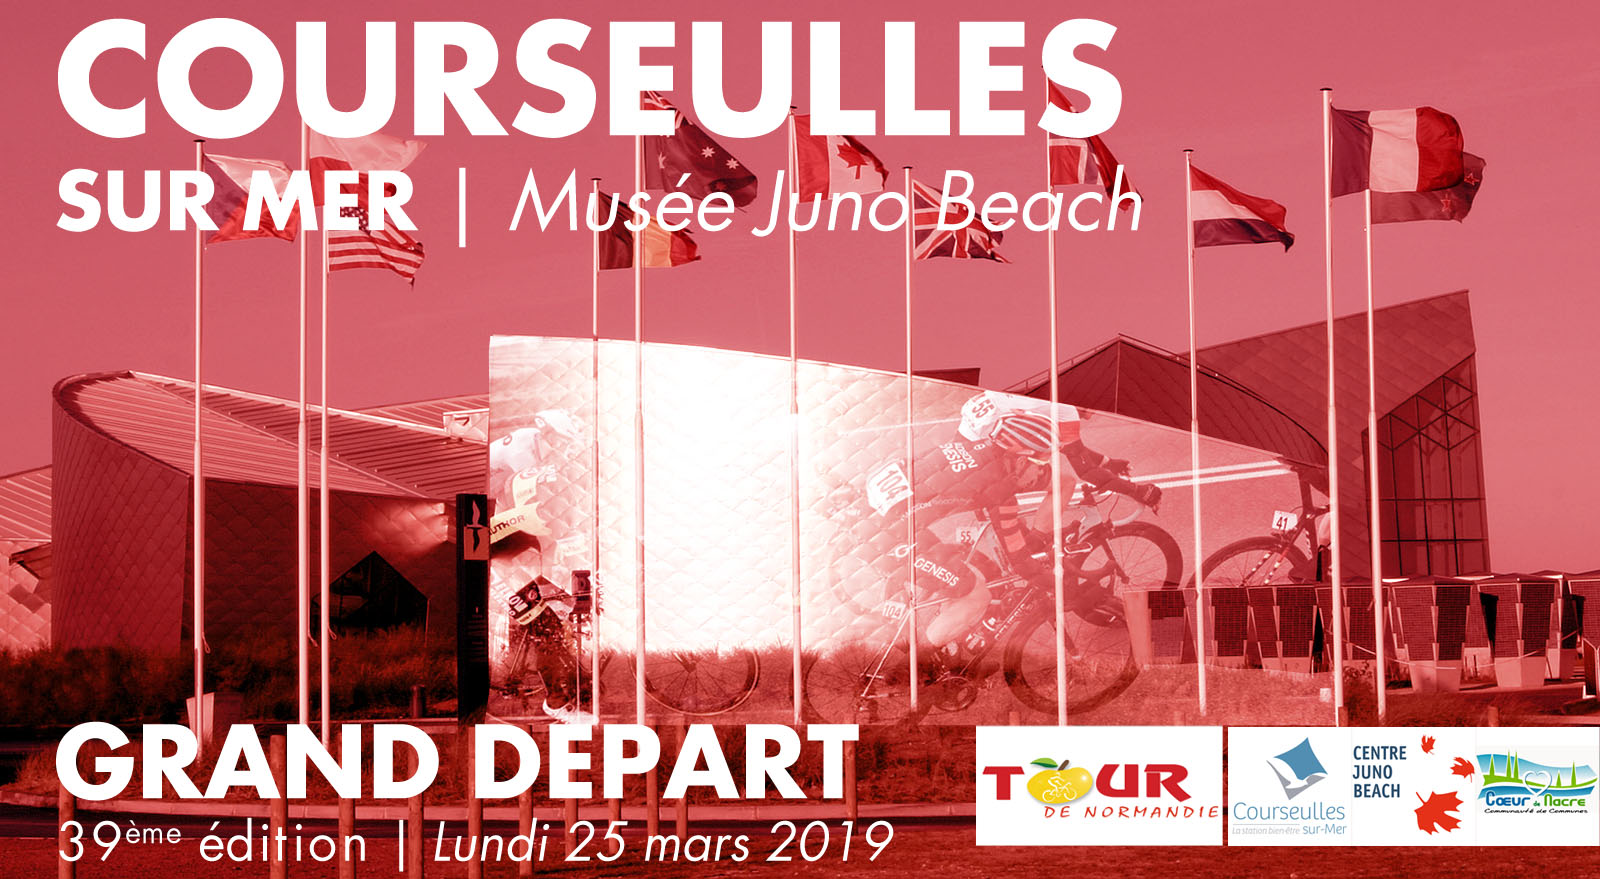 Grand depart 2019 tour de normandie courseulles sur mer juno beach